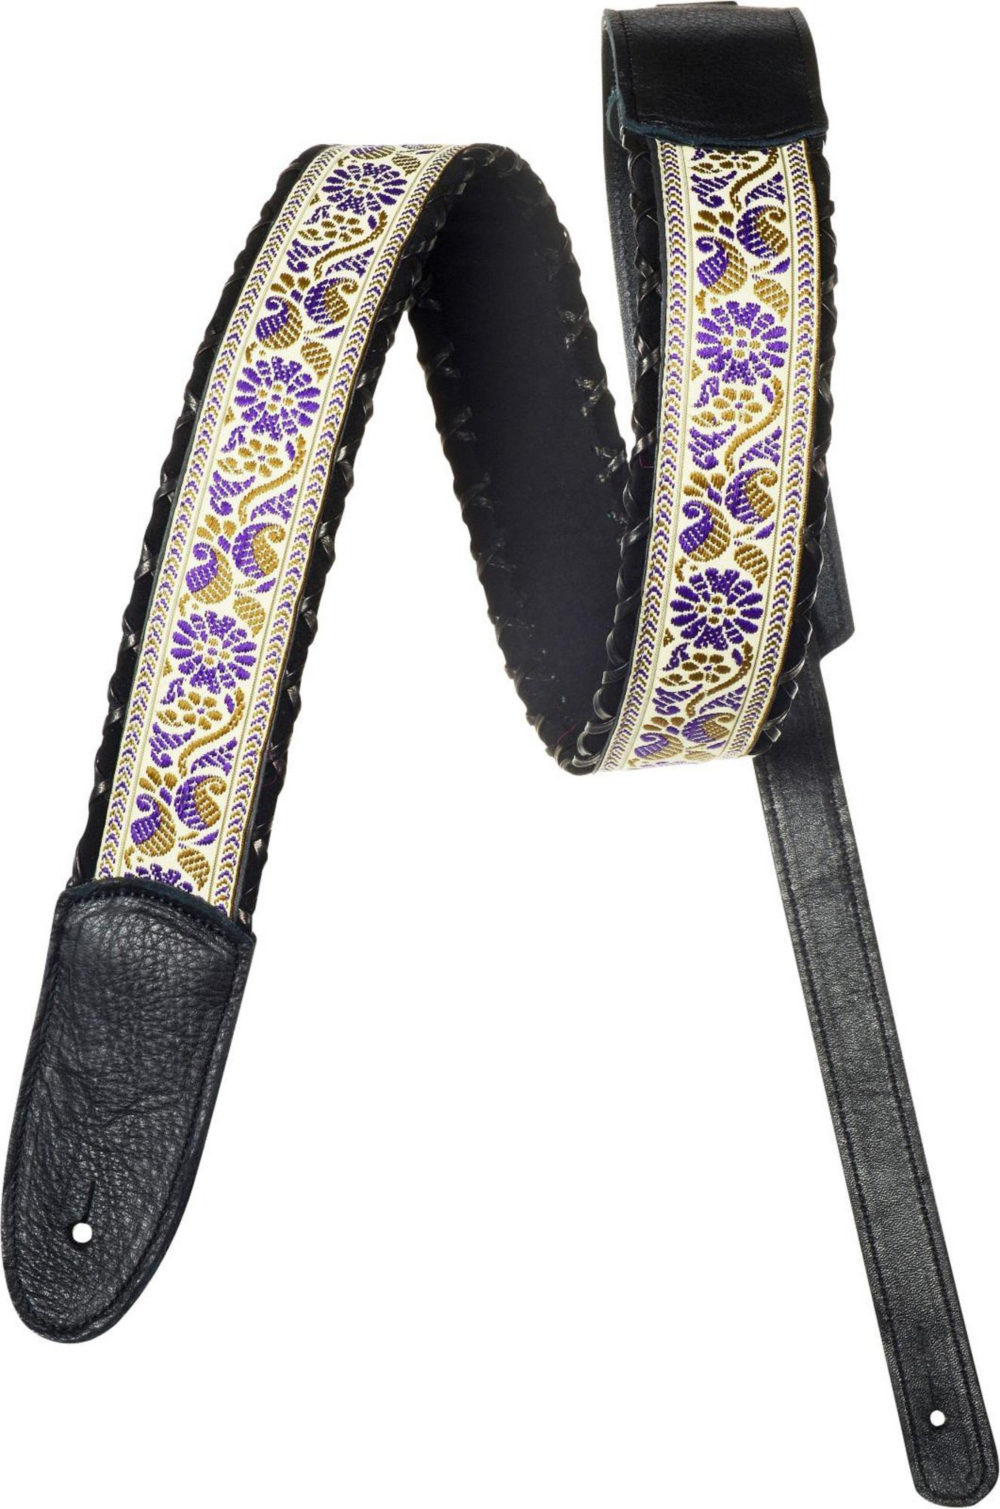 Jodi Head Harley Black Ice Guitar Strap Purple and Black 2 in. by Jodi Head